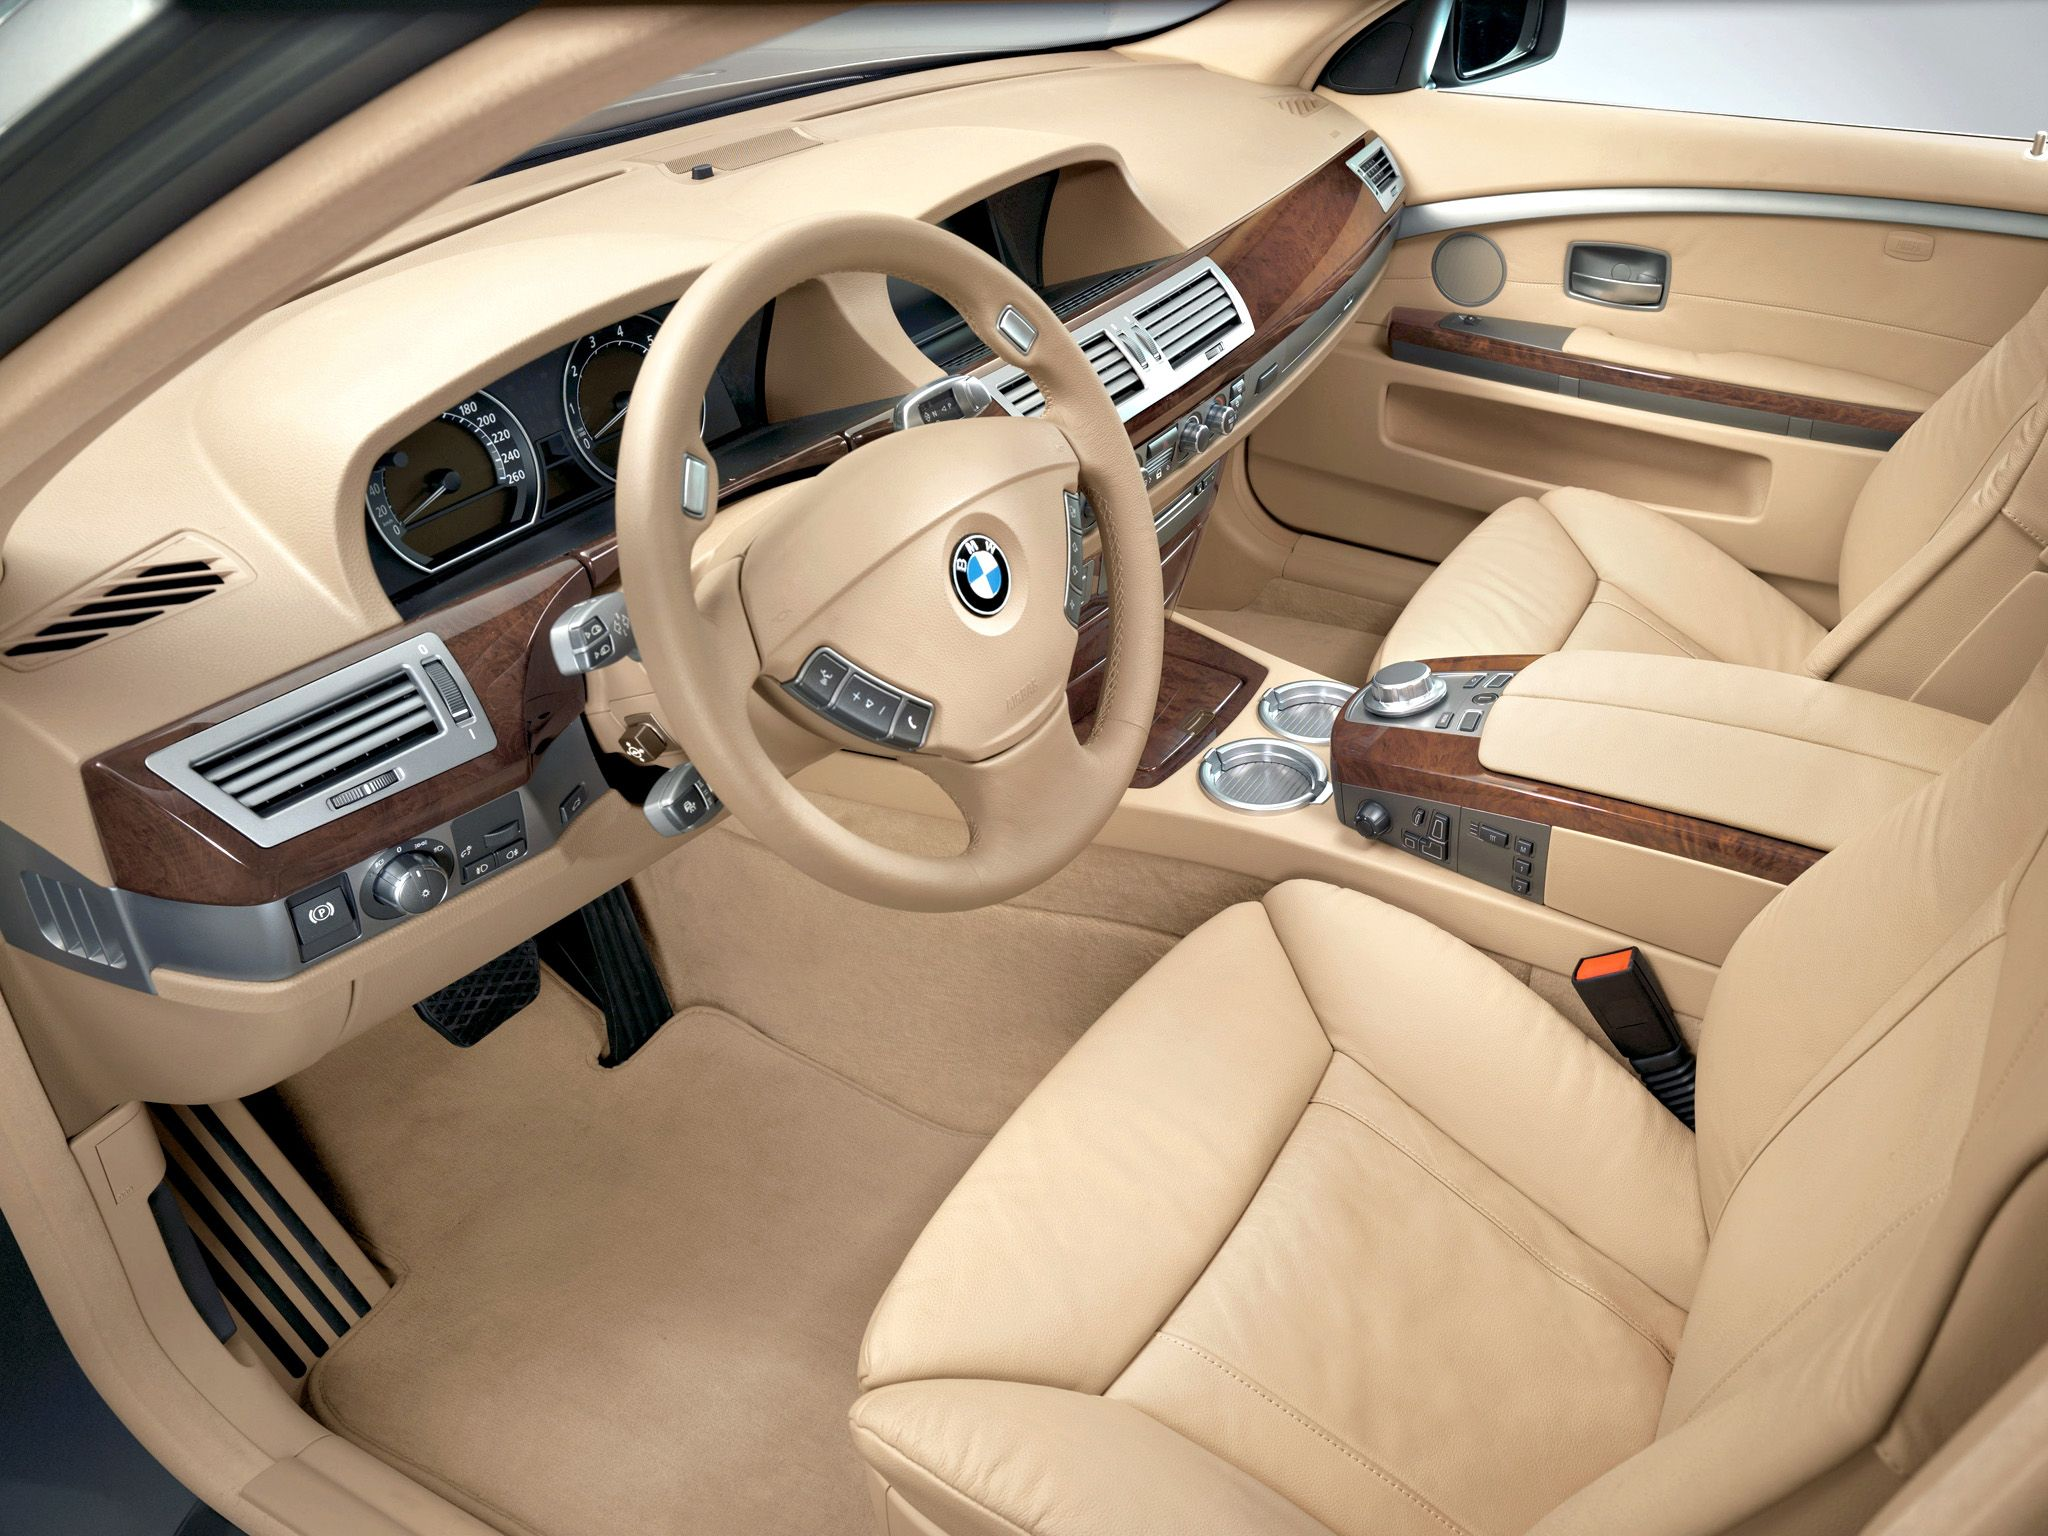 E65 BMW 7-series interior | BMW 7-series | Pinterest | BMW, Cars and ...